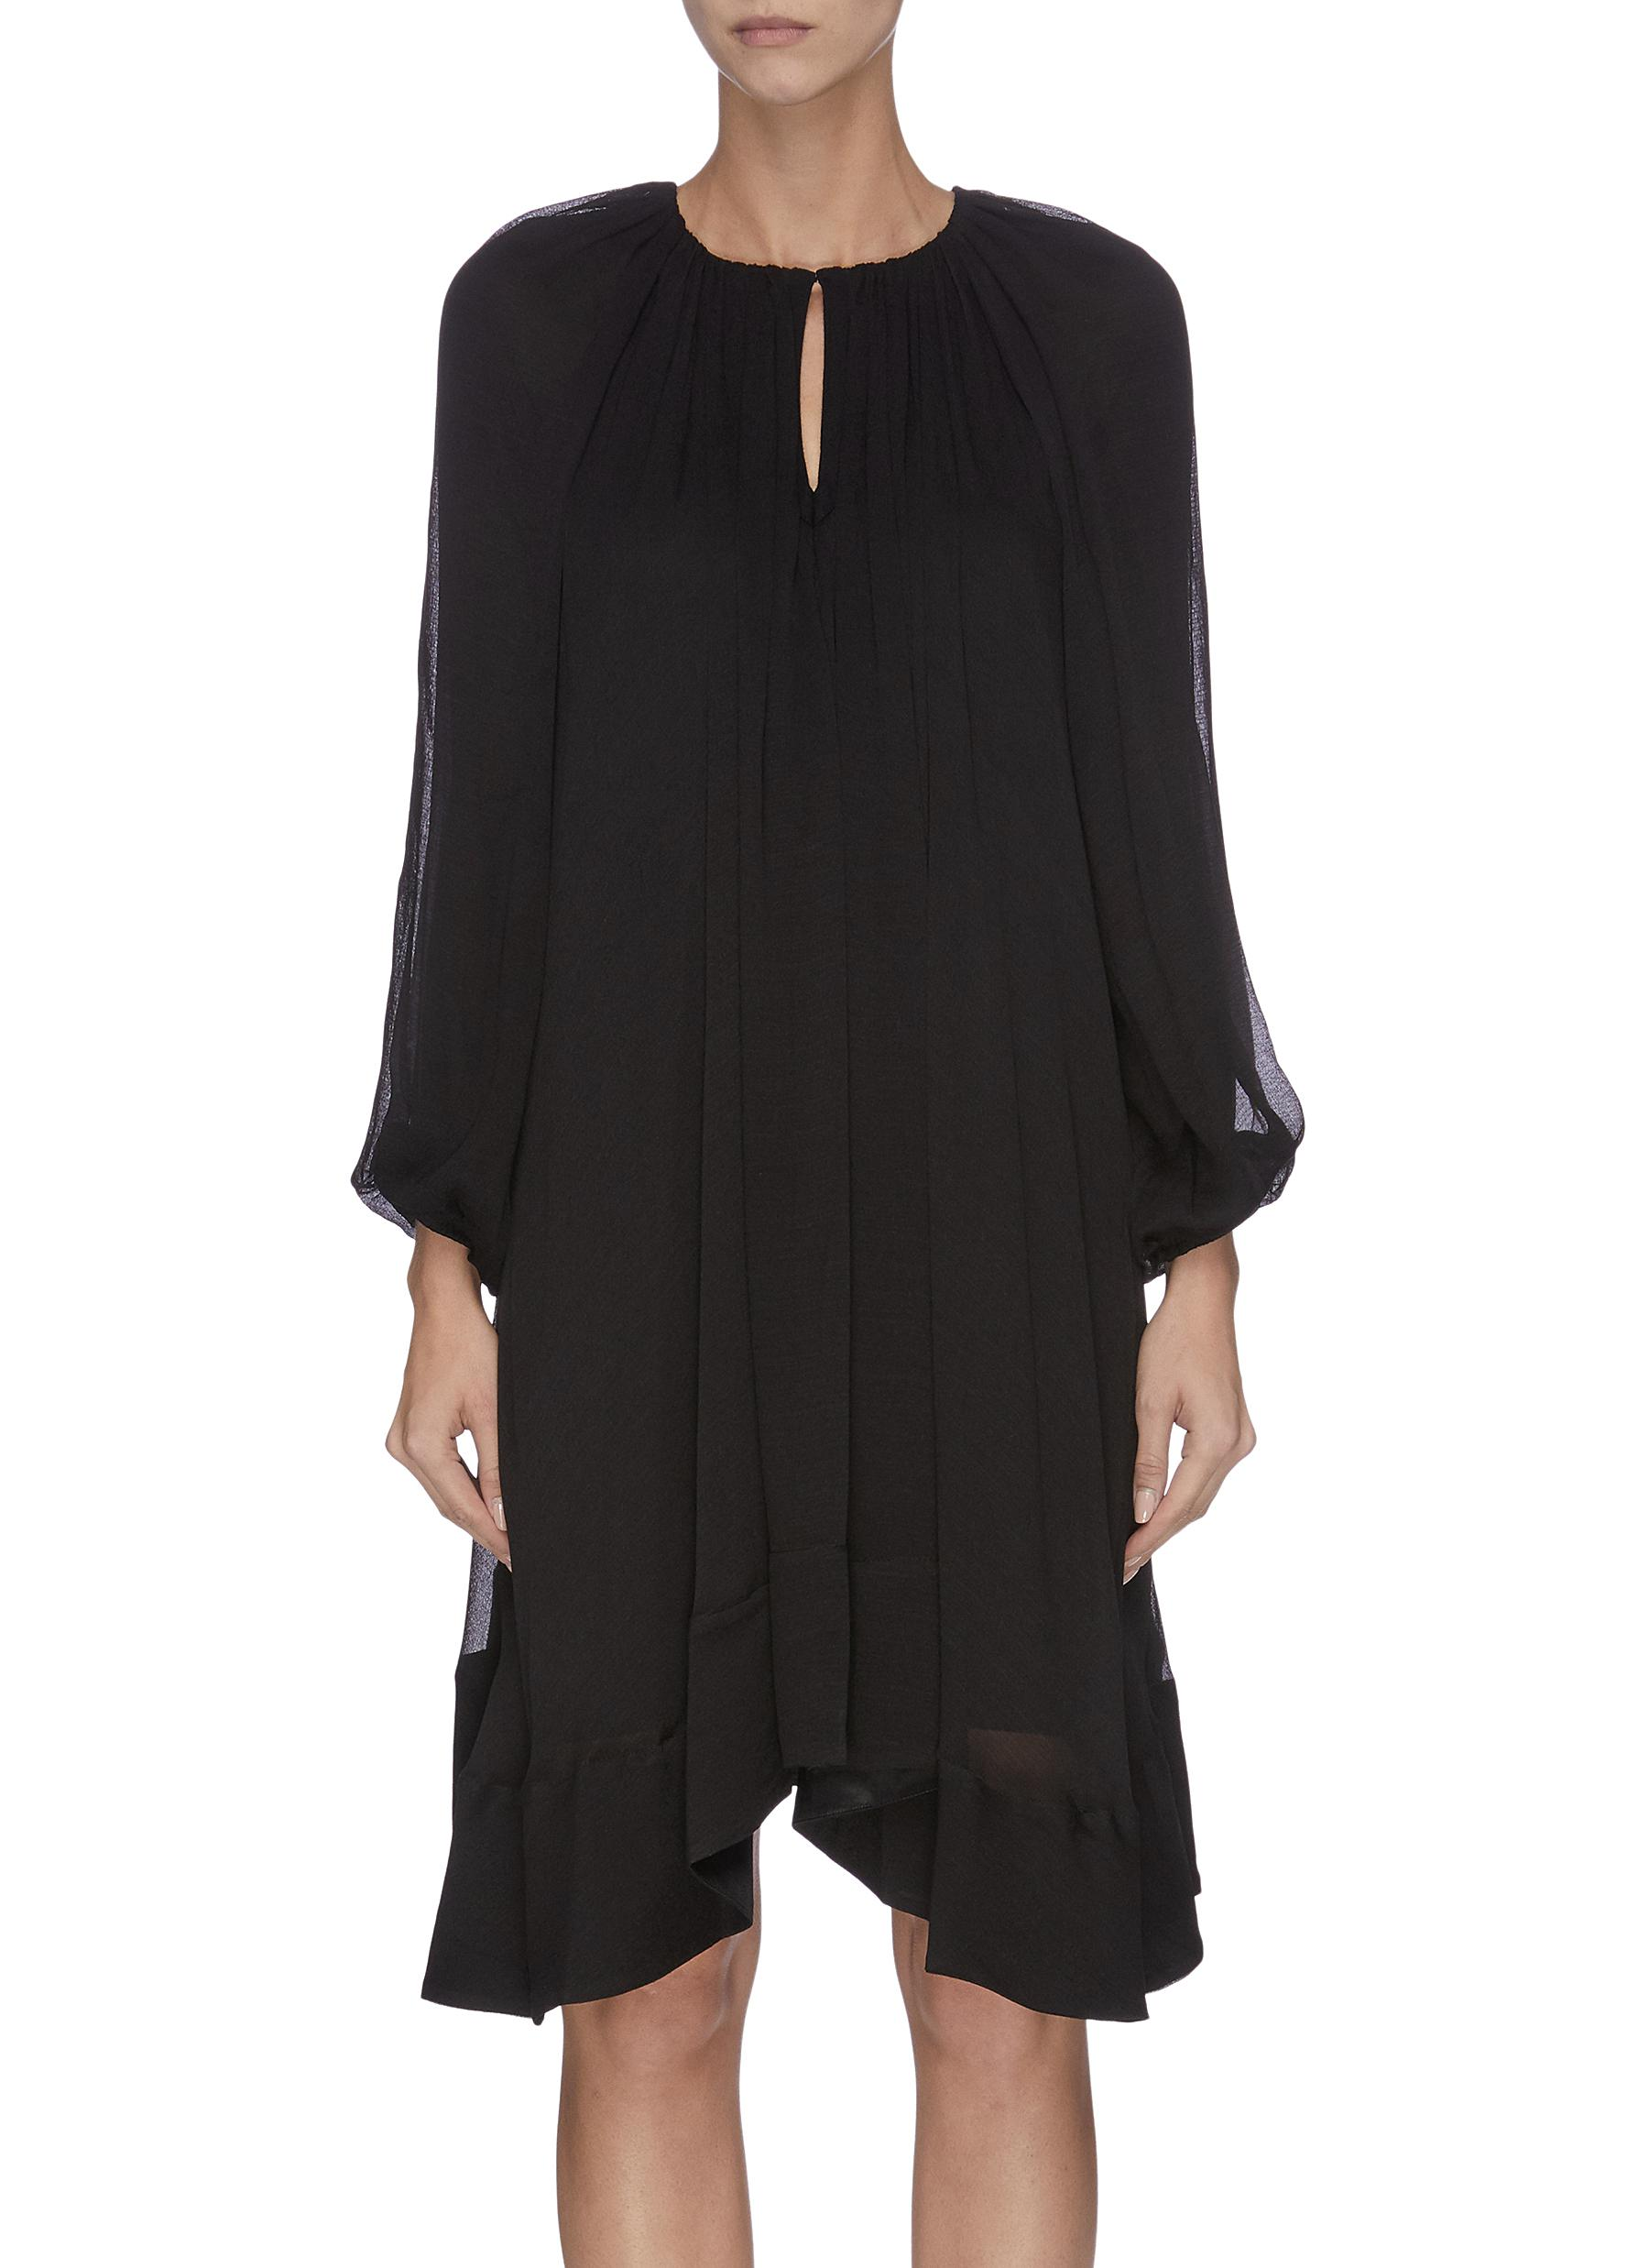 Ruche V-neck bishop sleeve dress - 3.1 PHILLIP LIM - Modalova